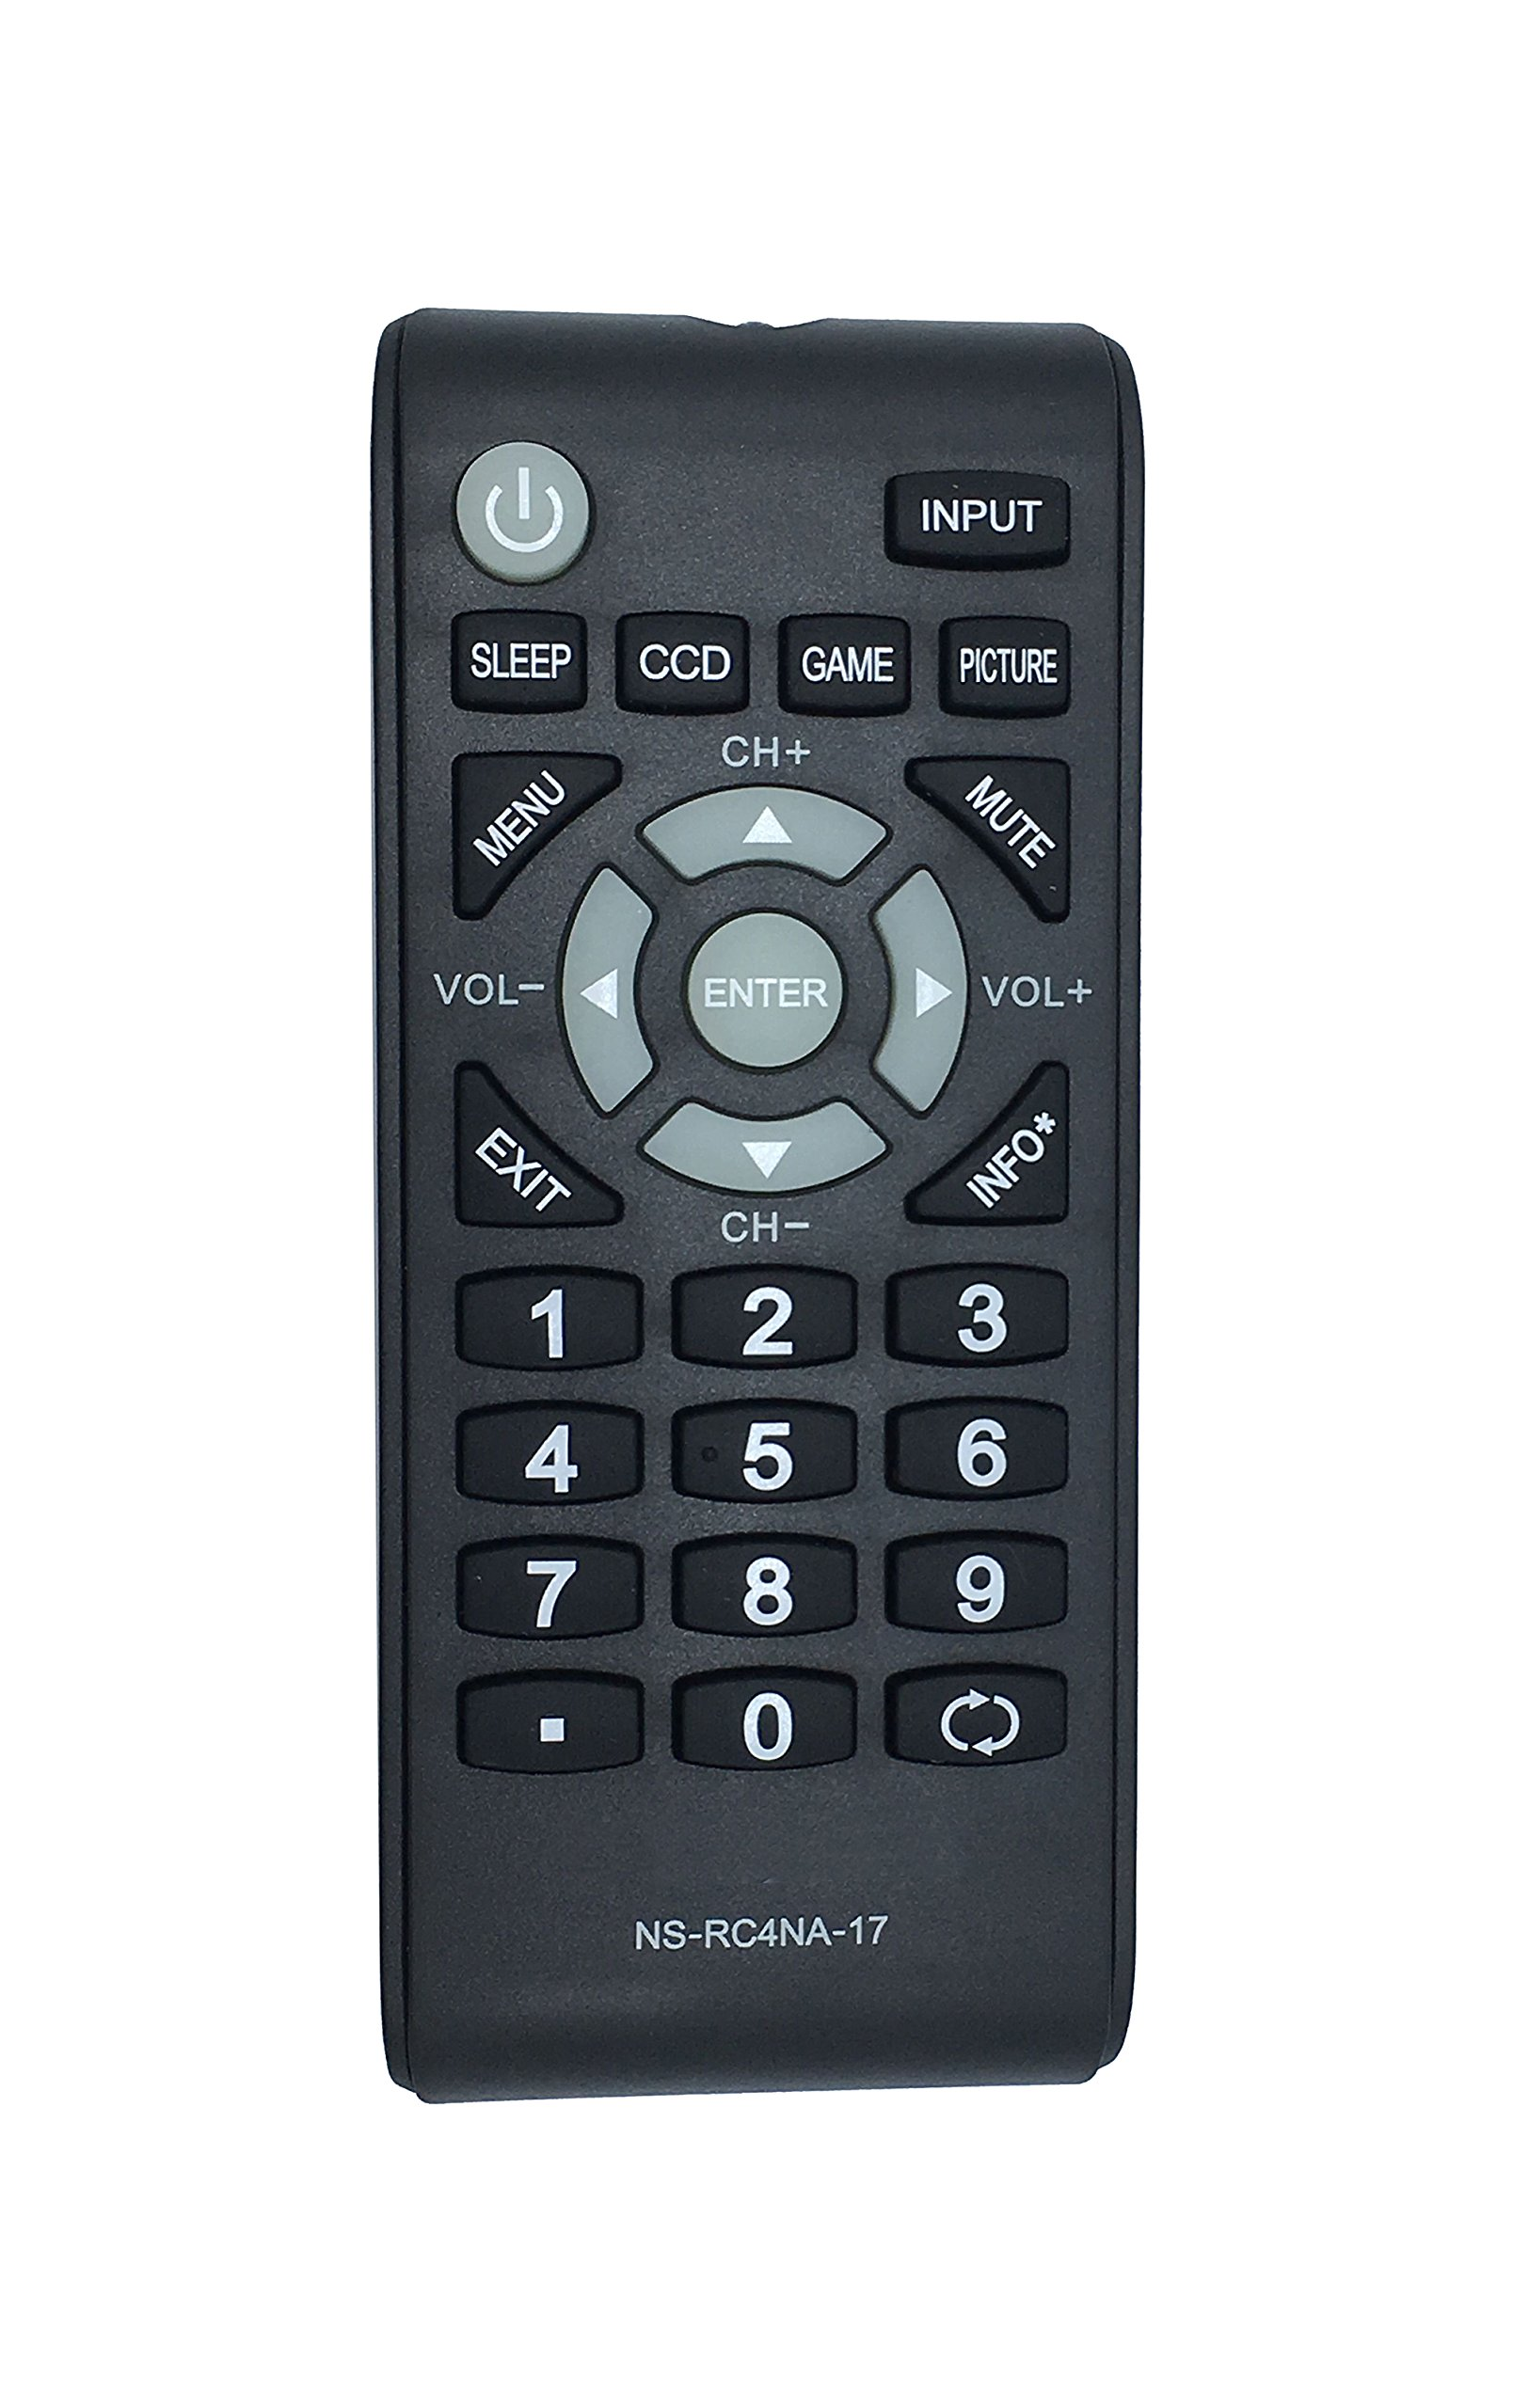 Insignia tv amazon new remote ns rc4na 17 fit for insignia lcd tv ns24d310na17 ns 24d310na17 fandeluxe Image collections